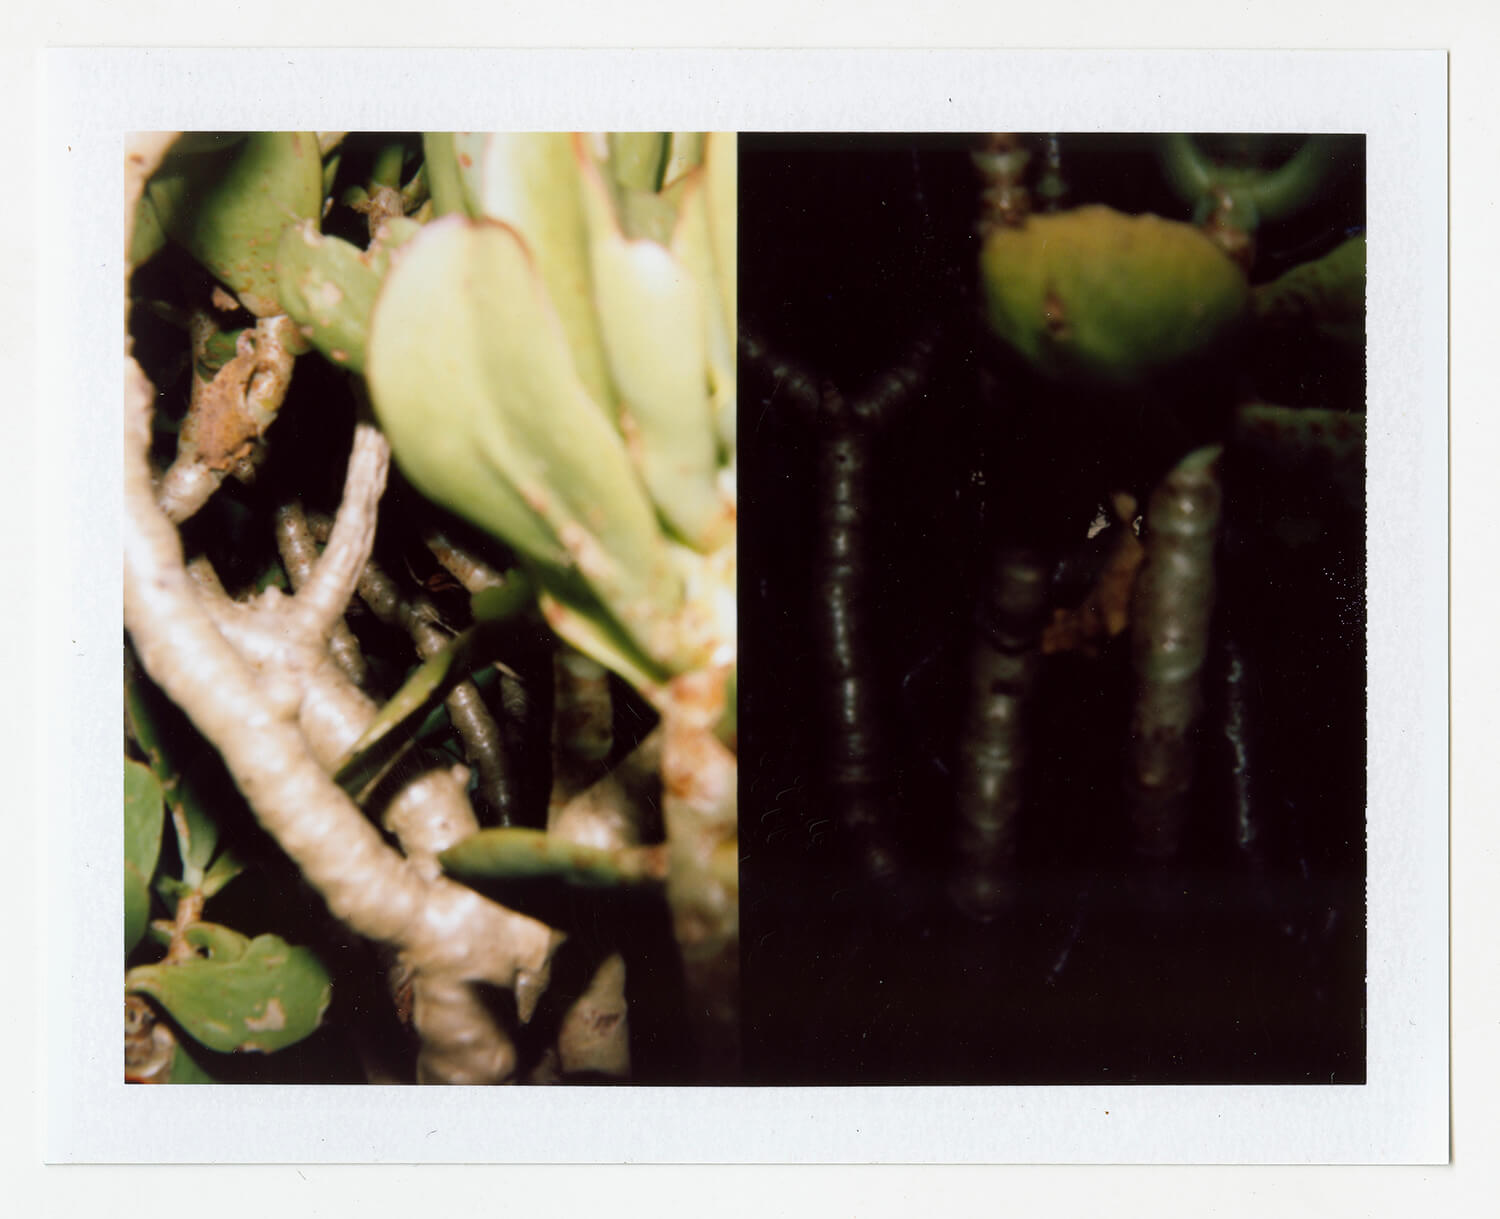 I.D.096, The Polaroid Revolutionary Workers, 2013, Polaroid Picture, 107mm x 86mm